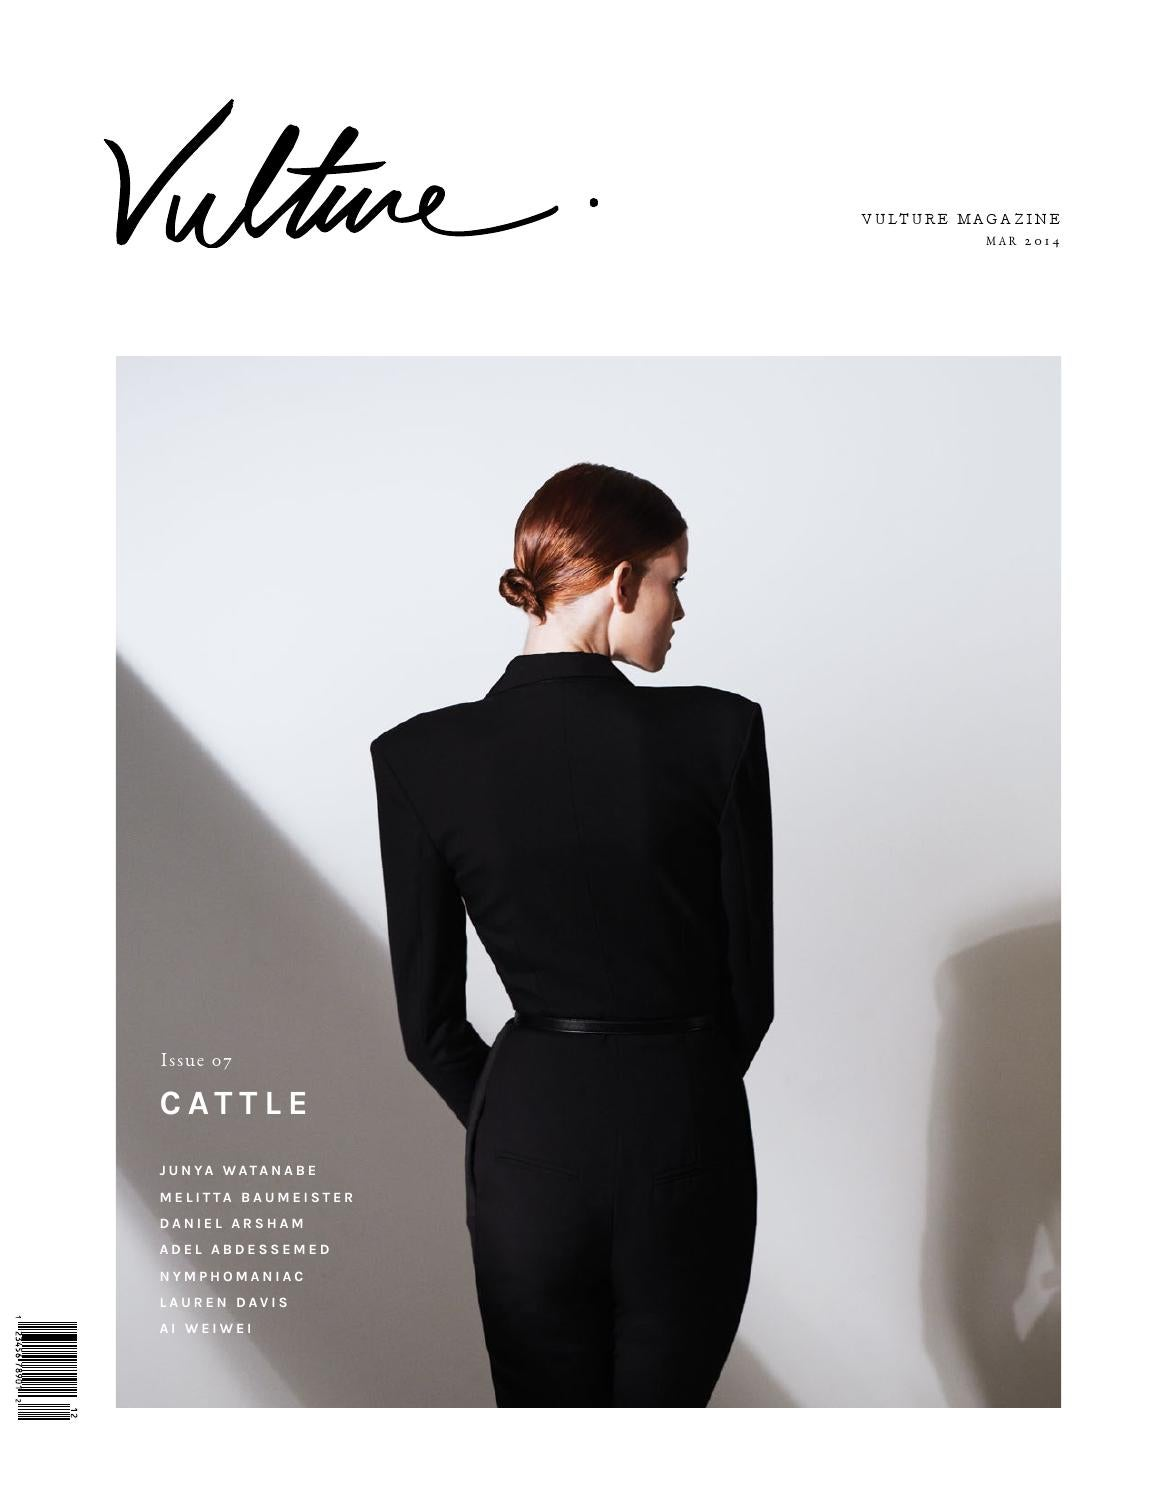 ab68203d1798 Vulture Magazine Issue 07  Cattle by Vulture Magazine - issuu